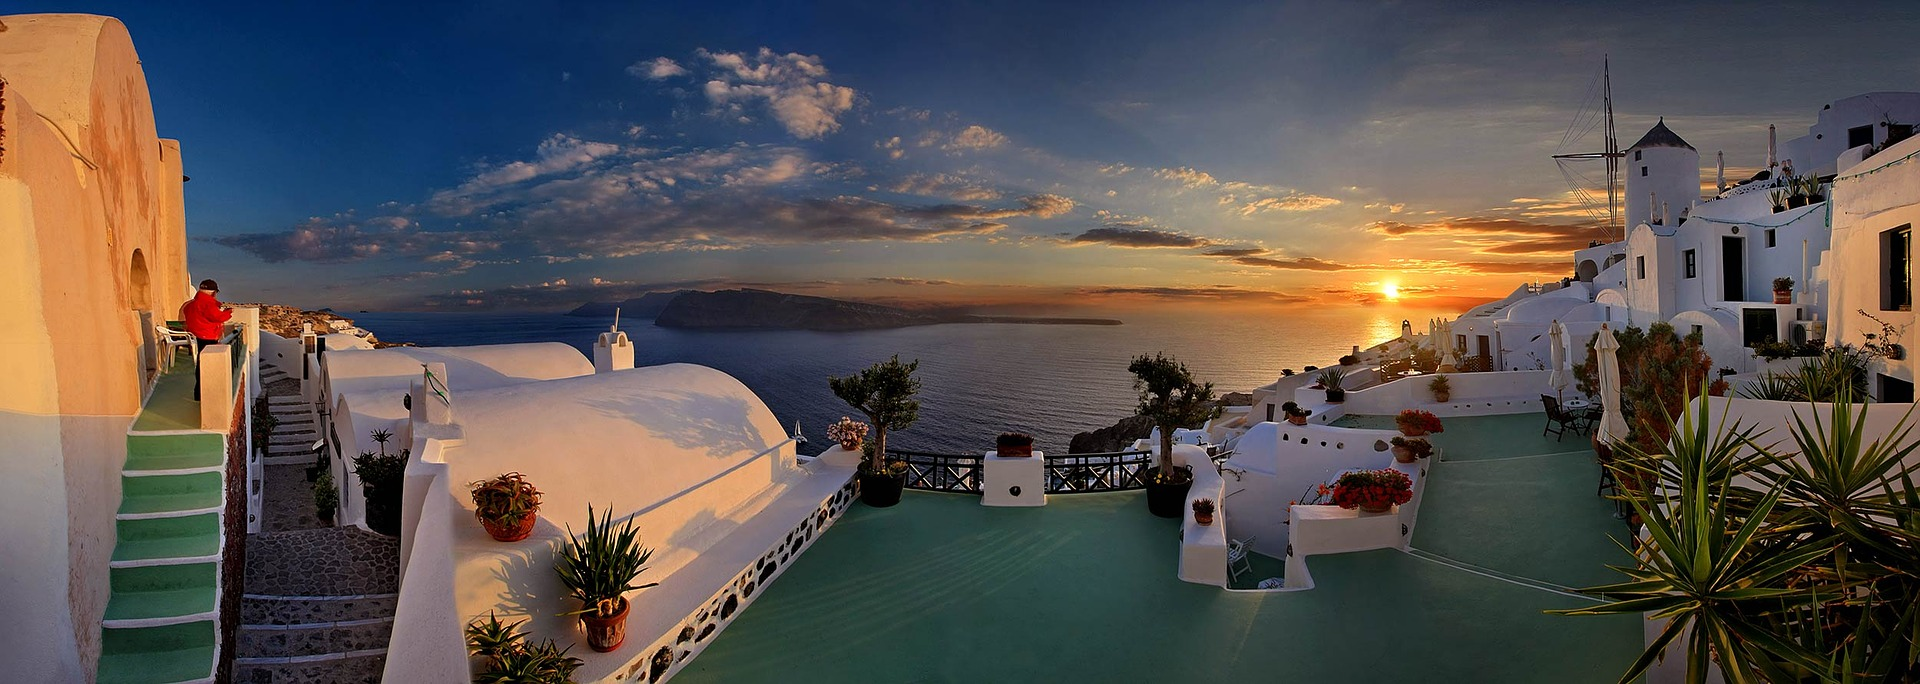 Santorini - Cruises in Greece - Greek cruises - Greek Travel Packages - Cruise Greek islands - Travel to Greek islands - Tours in Greece - Atlantis Travel Agency in Greece